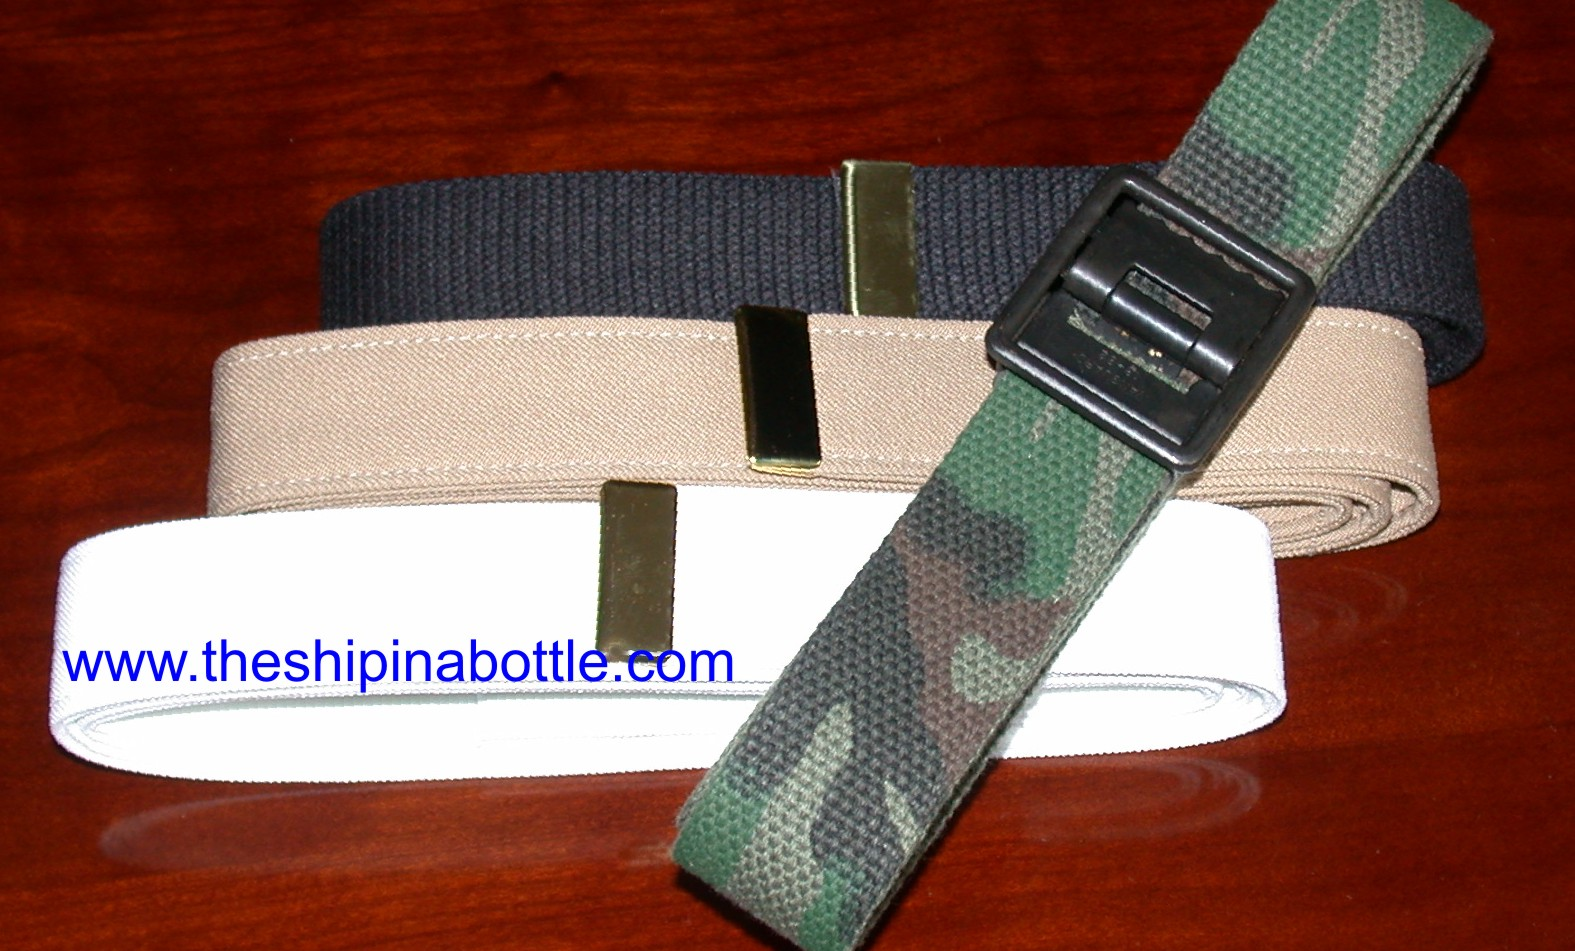 Authentic US Navy Belts - www.theshipinabottle.com